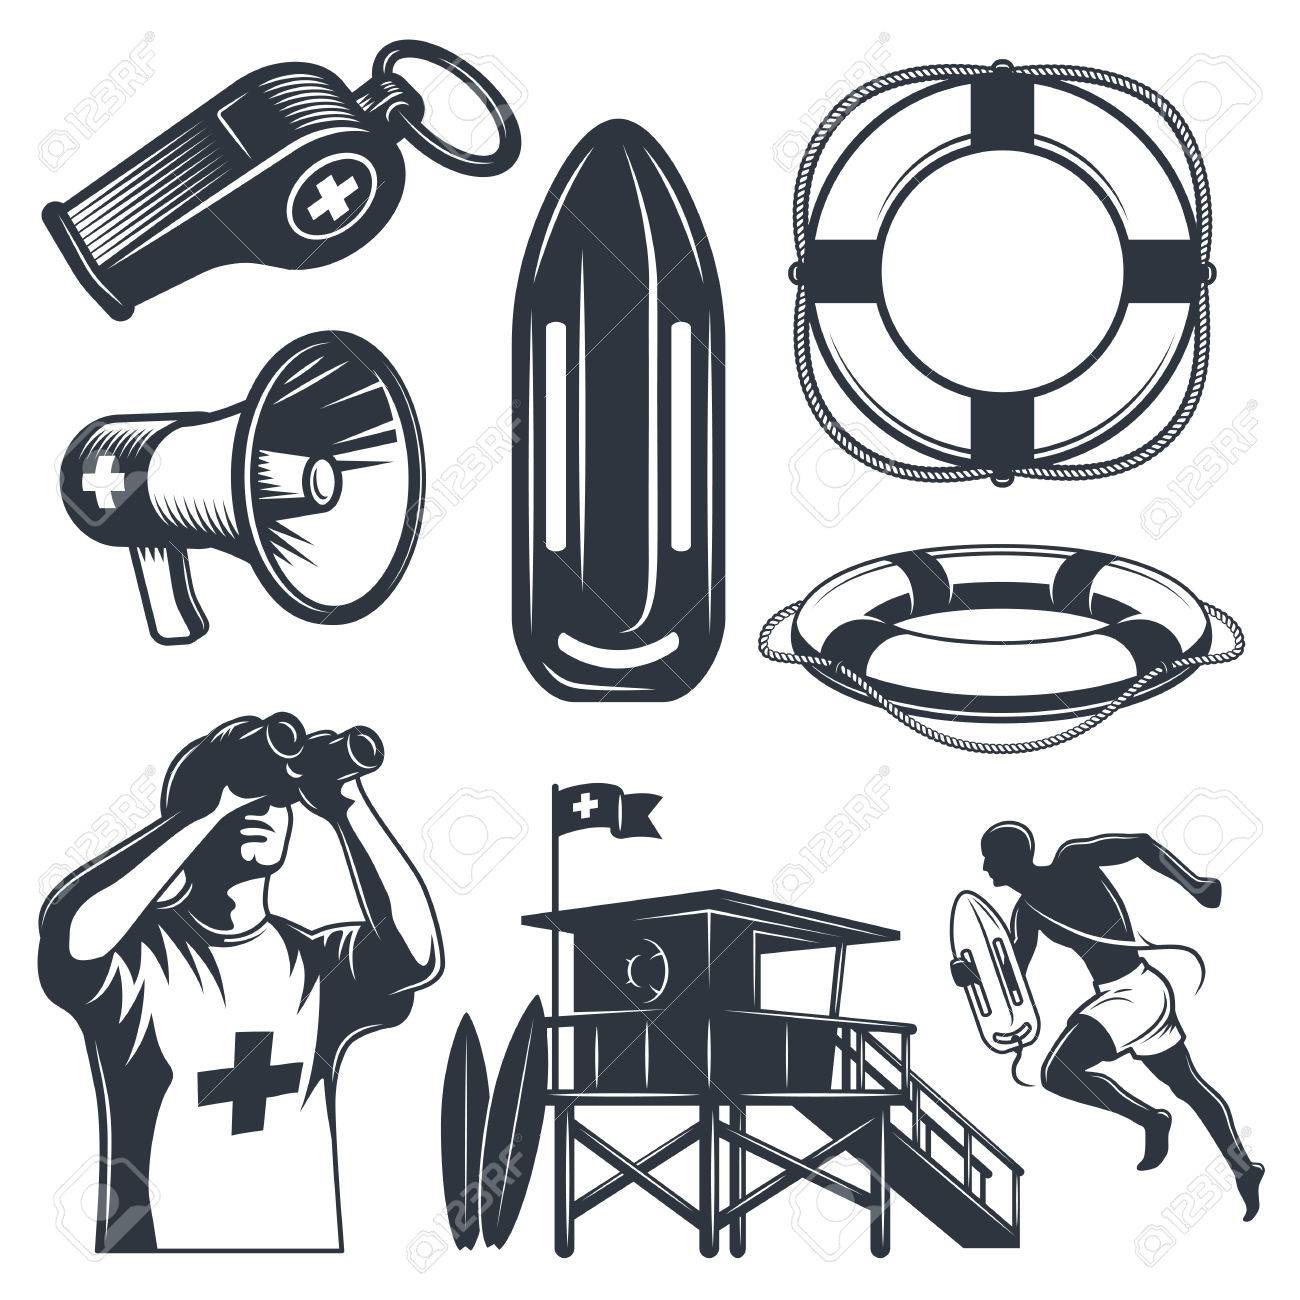 c6c063ba3c8 Set of vintage lifeguard elements. Monochrome style. isolated on white  background. Stock Vector